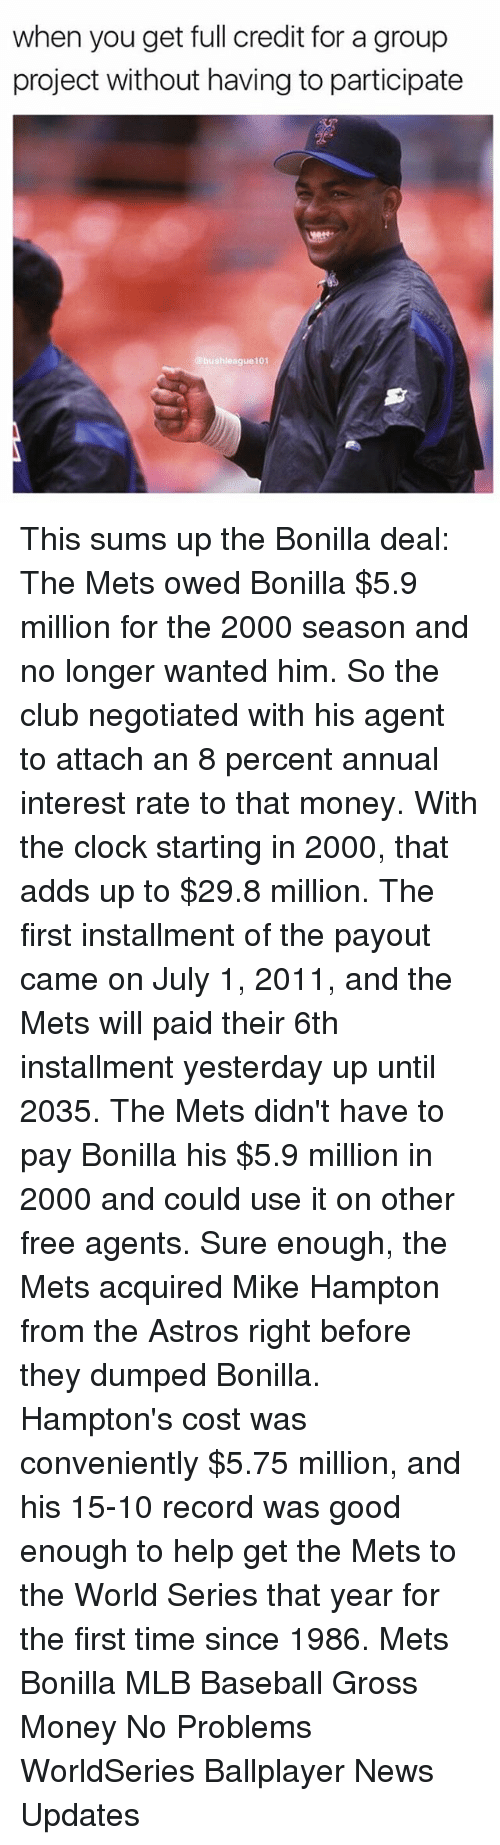 annuale: when you get full credit for a group  project without having to participate  bushleague101 This sums up the Bonilla deal: The Mets owed Bonilla $5.9 million for the 2000 season and no longer wanted him. So the club negotiated with his agent to attach an 8 percent annual interest rate to that money. With the clock starting in 2000, that adds up to $29.8 million. The first installment of the payout came on July 1, 2011, and the Mets will paid their 6th installment yesterday up until 2035. The Mets didn't have to pay Bonilla his $5.9 million in 2000 and could use it on other free agents. Sure enough, the Mets acquired Mike Hampton from the Astros right before they dumped Bonilla. Hampton's cost was conveniently $5.75 million, and his 15-10 record was good enough to help get the Mets to the World Series that year for the first time since 1986. Mets Bonilla MLB Baseball Gross Money No Problems WorldSeries Ballplayer News Updates